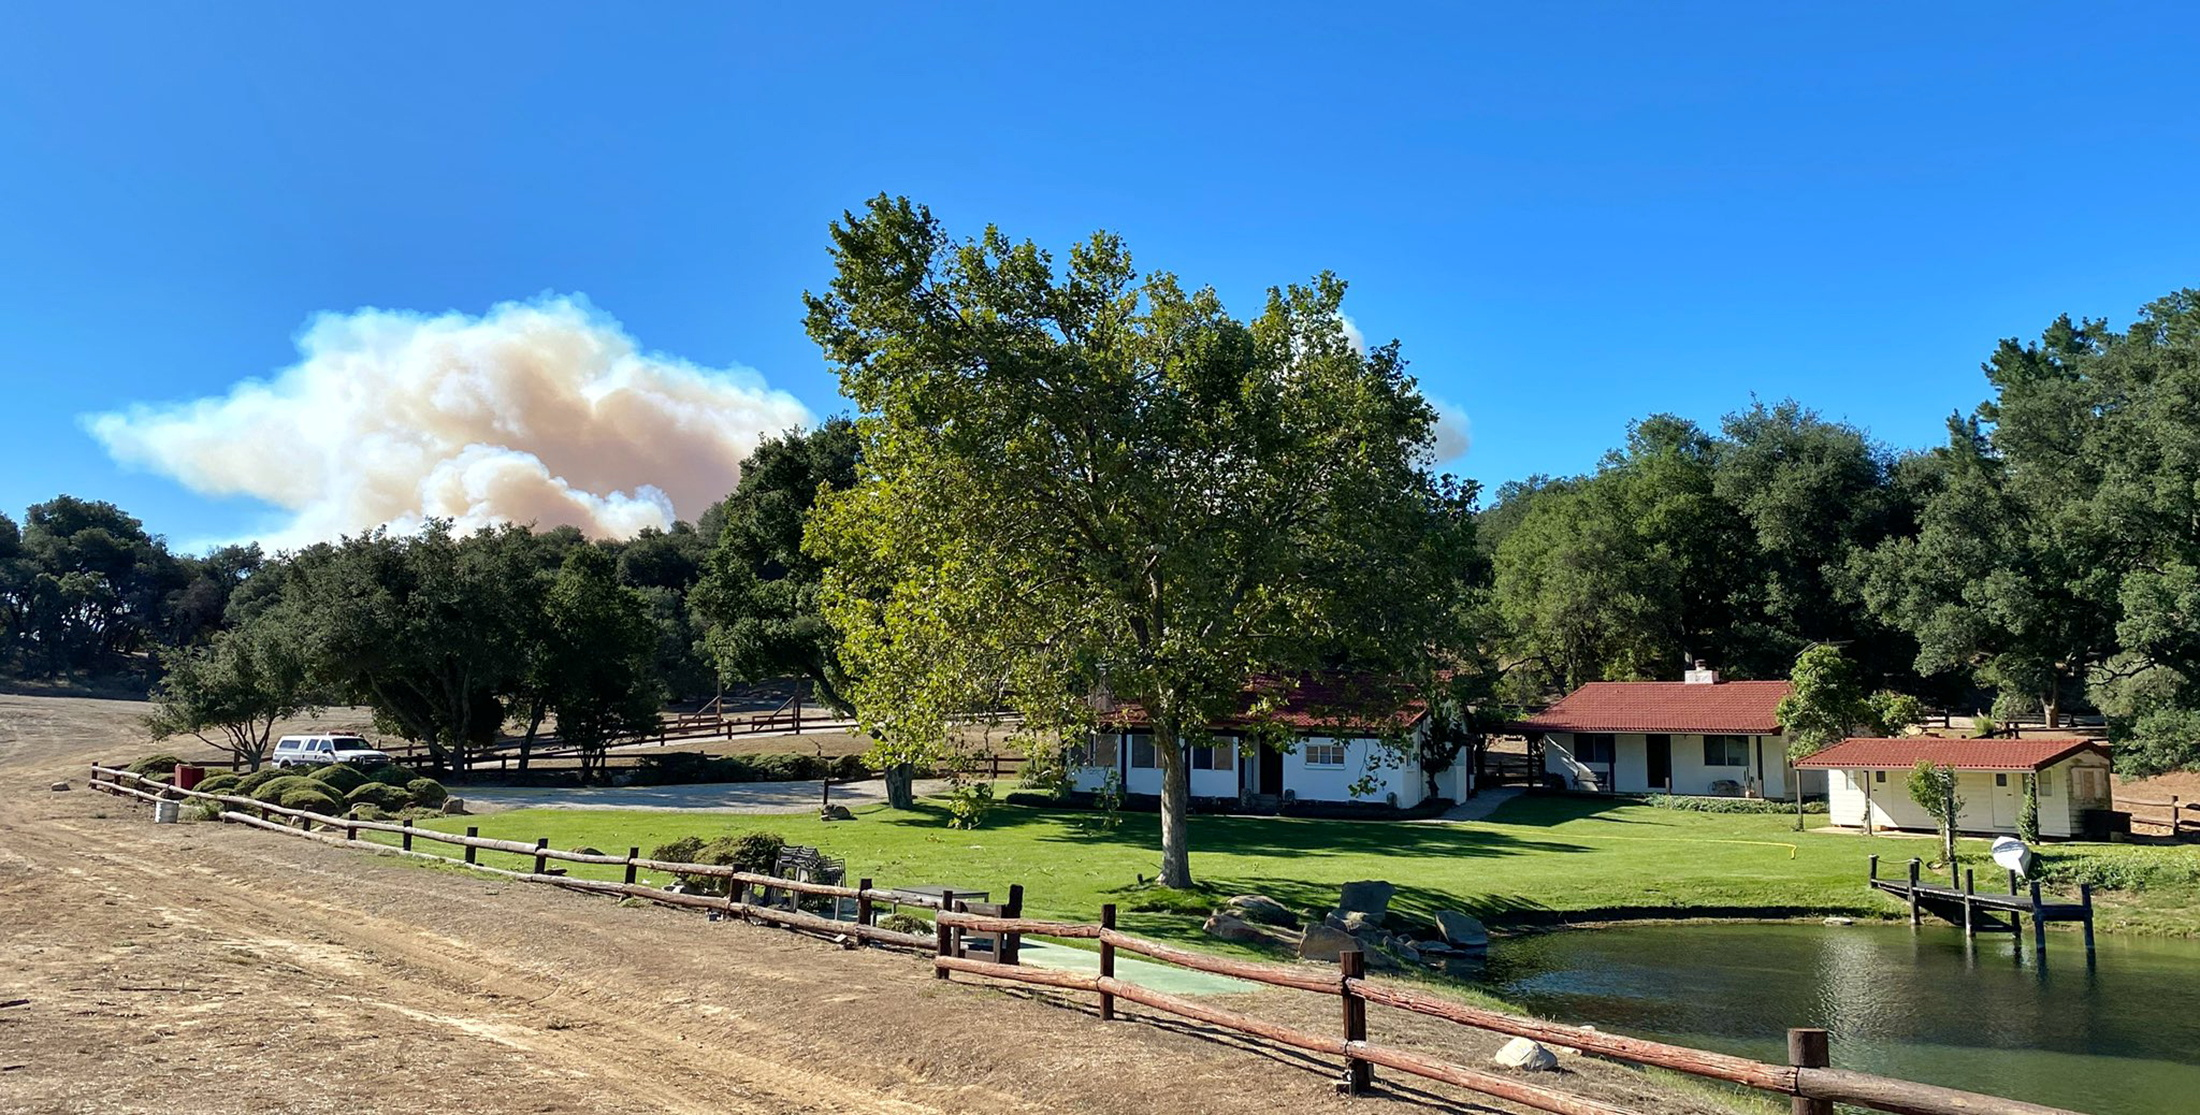 A smoke column from the Alisal Fire builds in the distance behind former U.S. President Ronald Reagan's Rancho del Cielo in Santa Barbara County near Goleta, California, U.S. October 12, 2021. The fire department said that the blaze was several miles from the ranch, with good defensible space, and several U.S. Forest Service fire engines were arriving to provide structure protection.  Mike Eliason/SBCo FD/Handout via REUTERS.